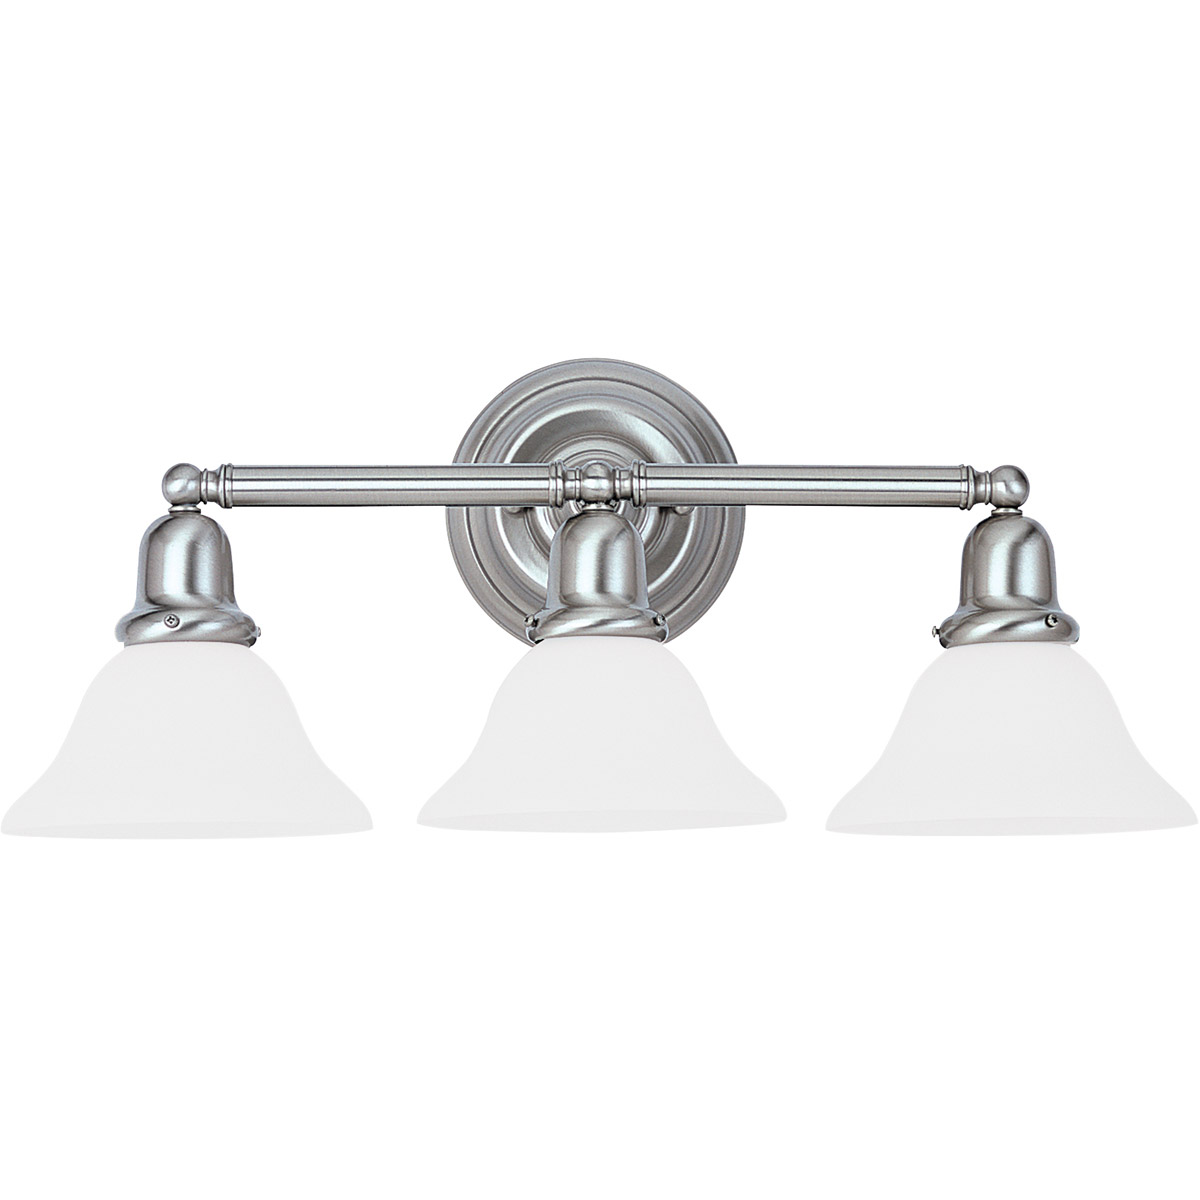 Sea Gull 44062-962 Sussex 3 Light 24 inch Brushed Nickel Bath Vanity Wall Light in Satin White Glass photo